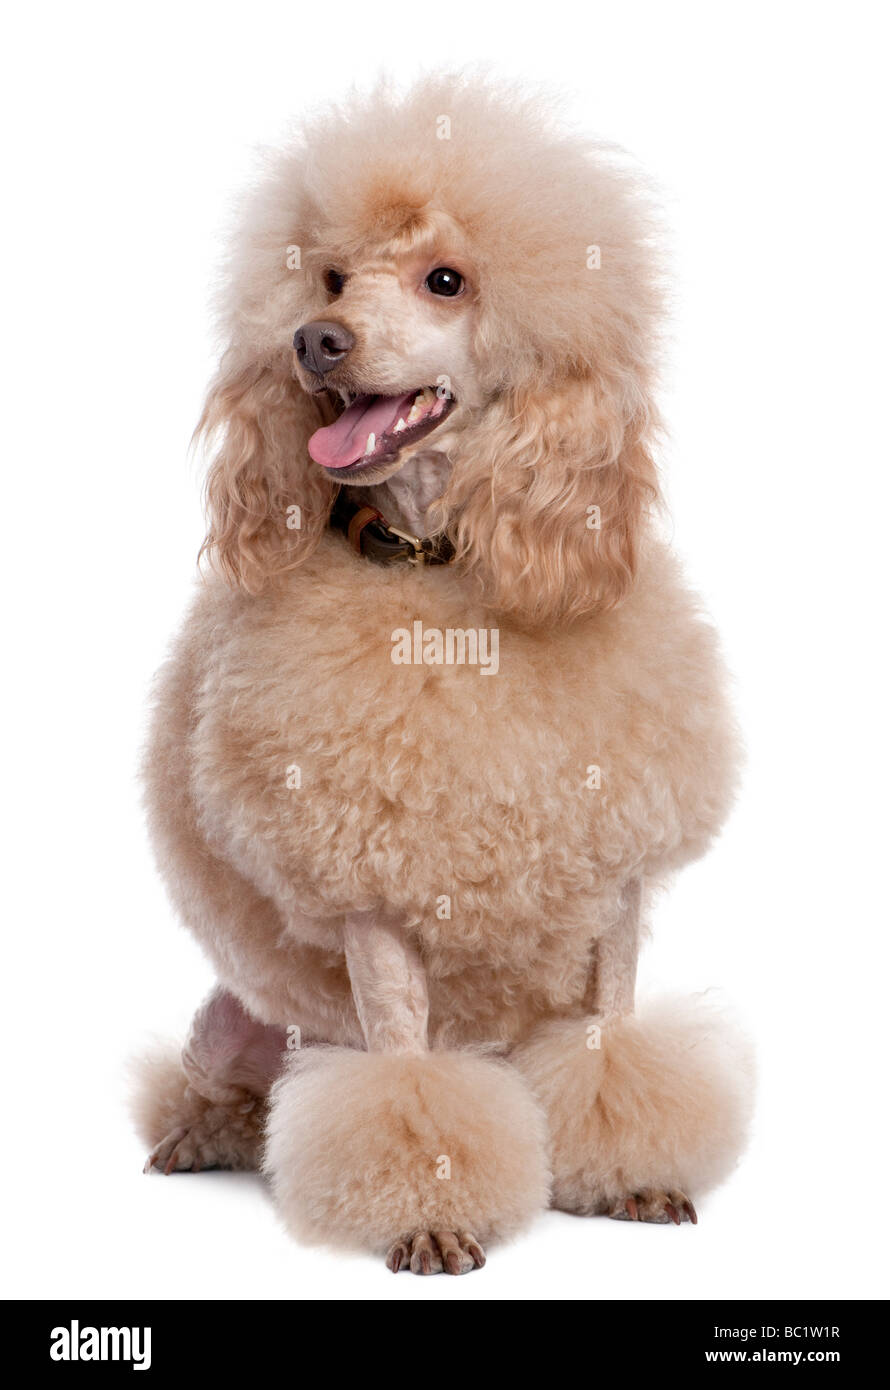 groomed apricot poodle 2 years old in front of a white background - Stock Image